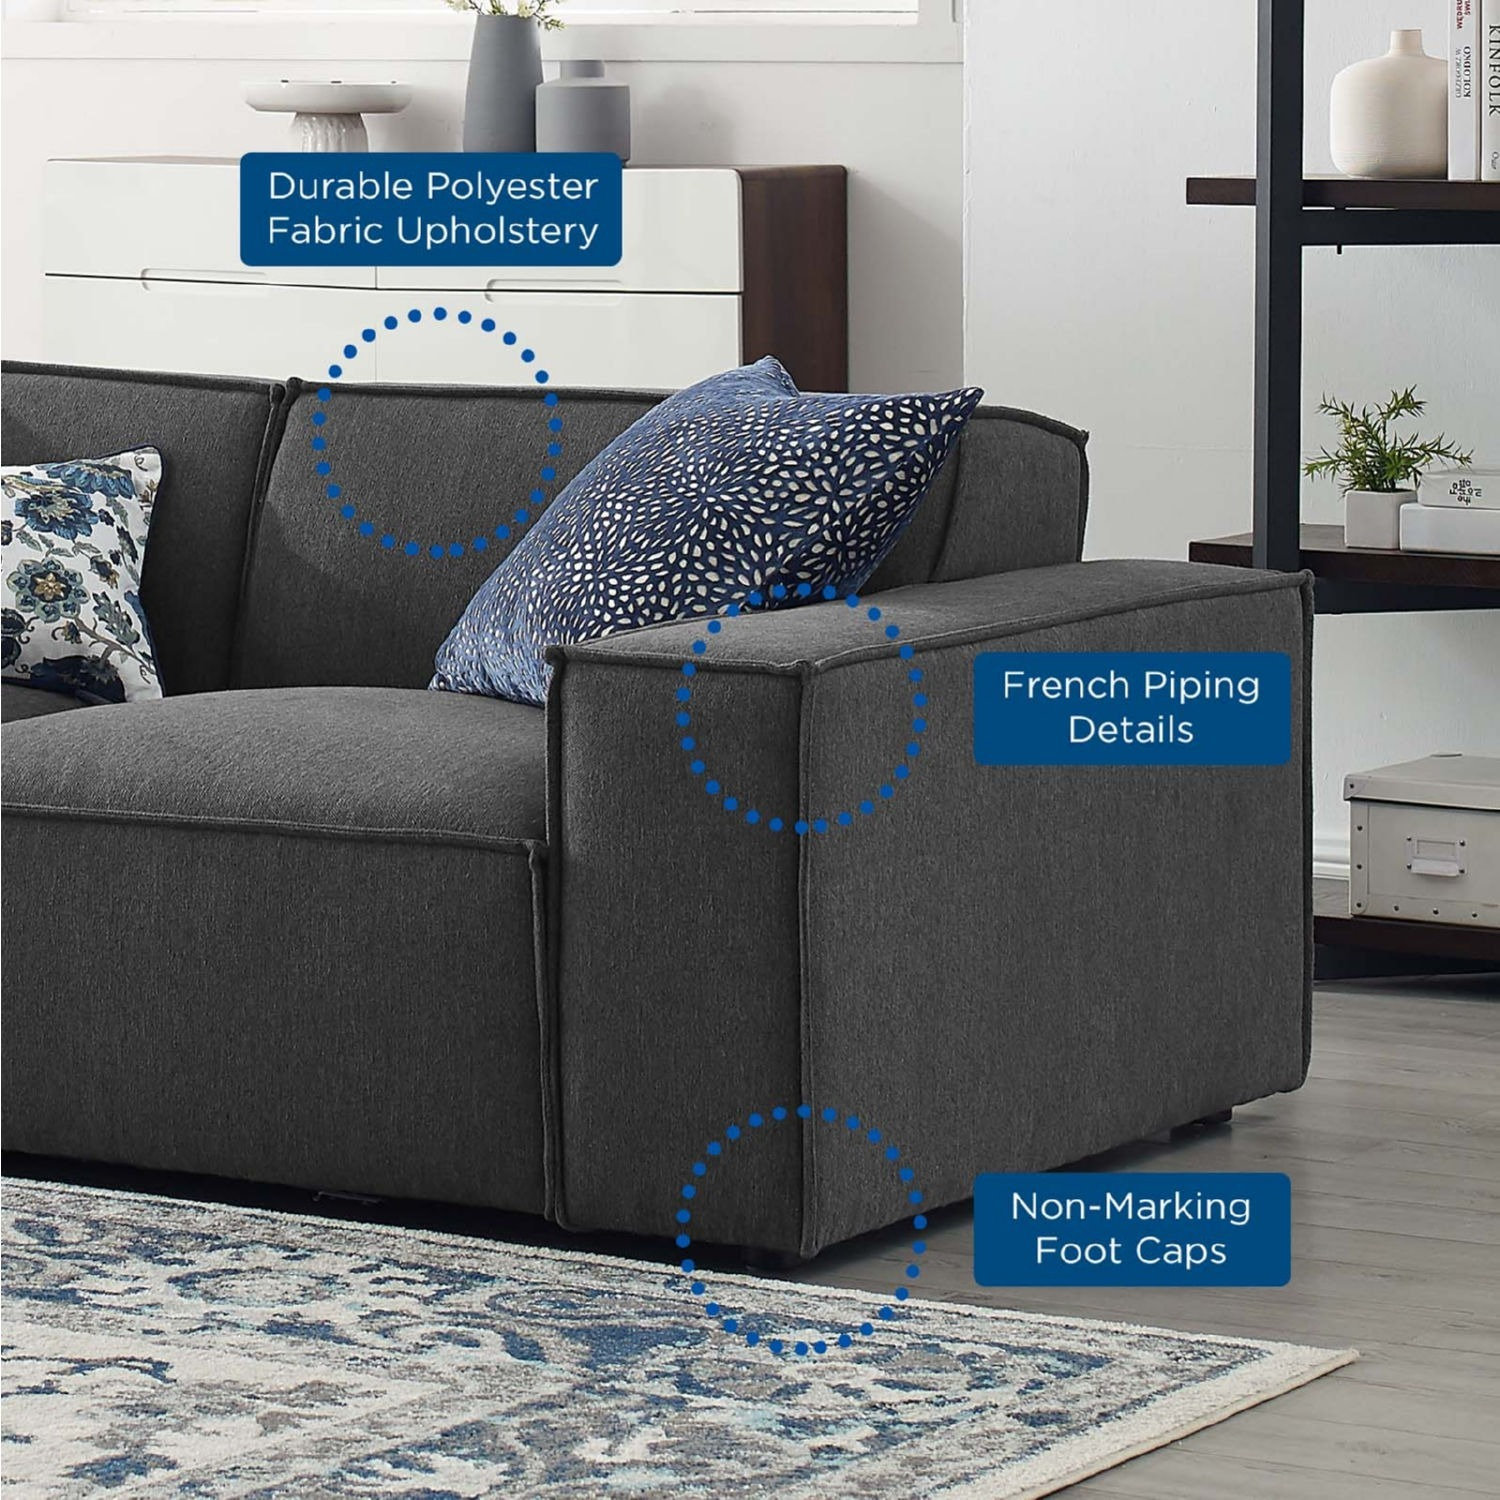 4-Piece Sectional Sofa In Charcoal Fabric - image-9